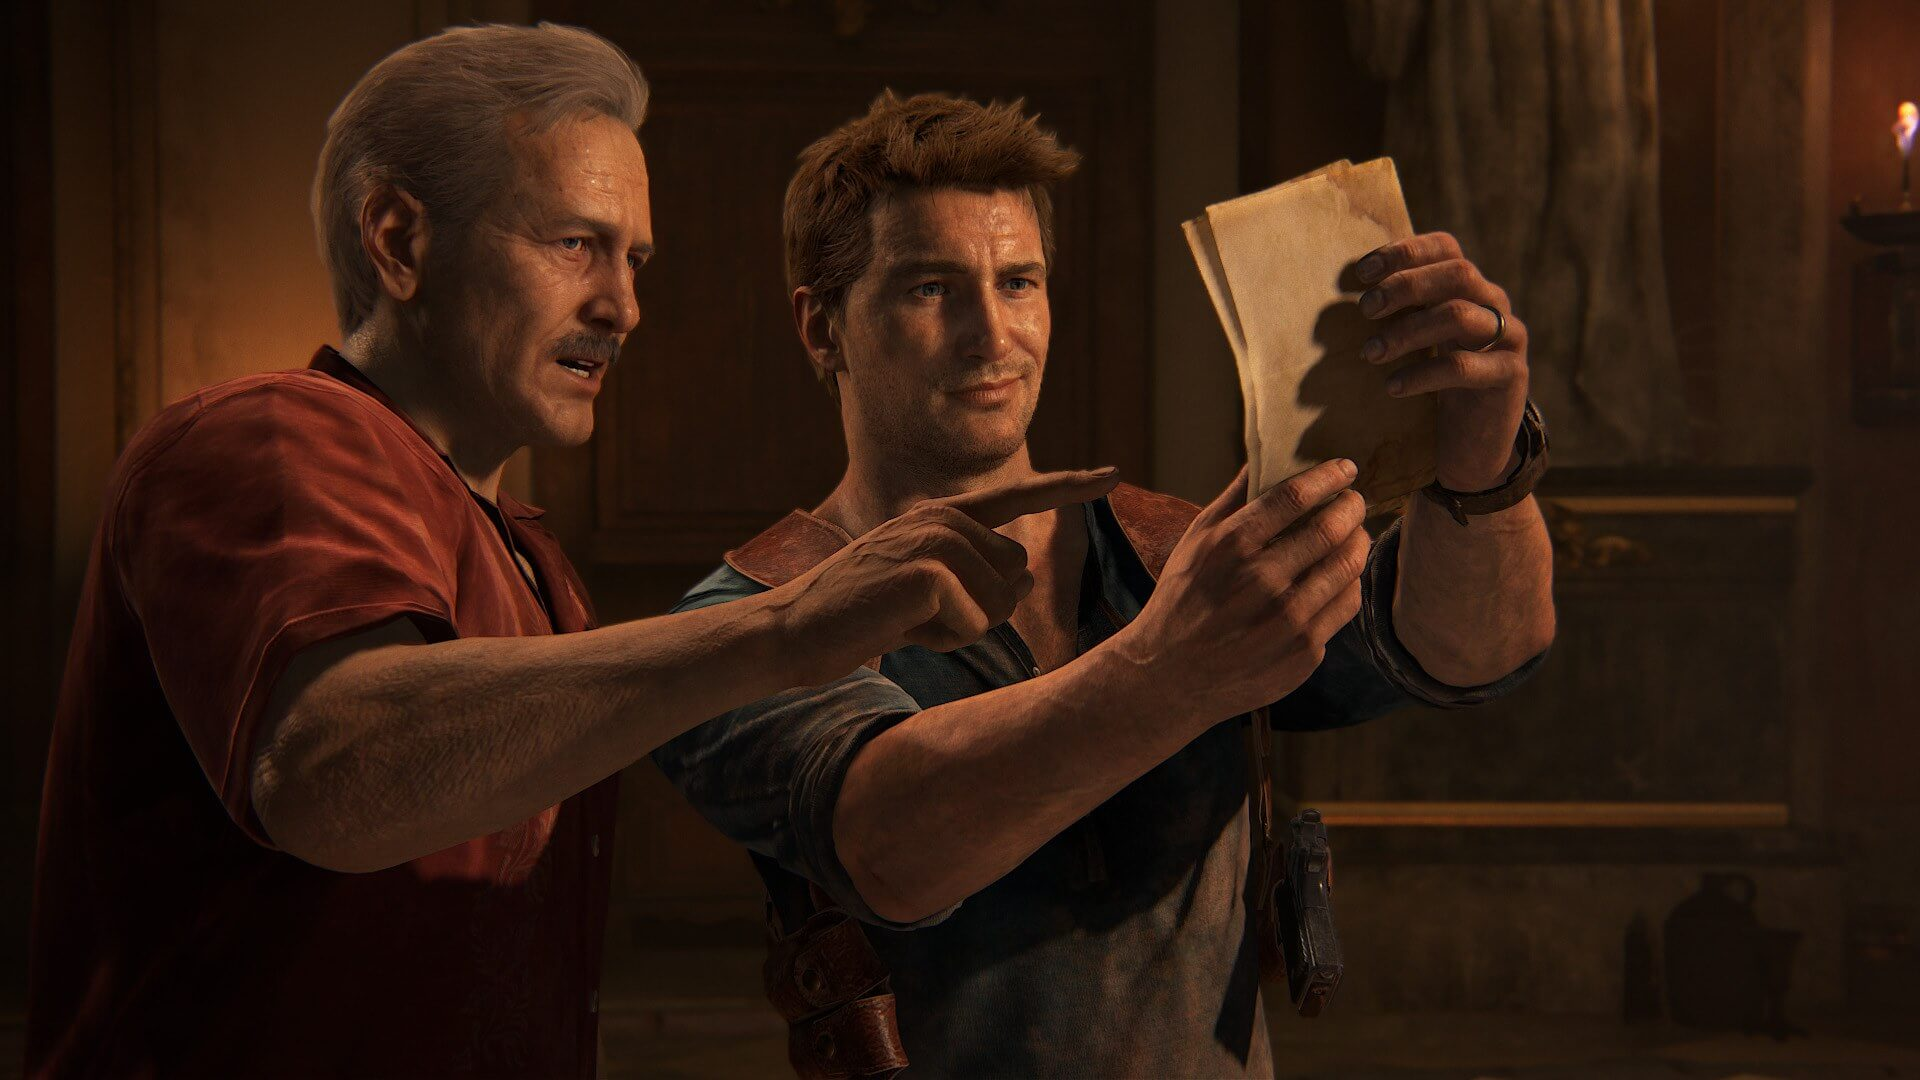 Mark Wahlberg set to play Sully in Uncharted movie